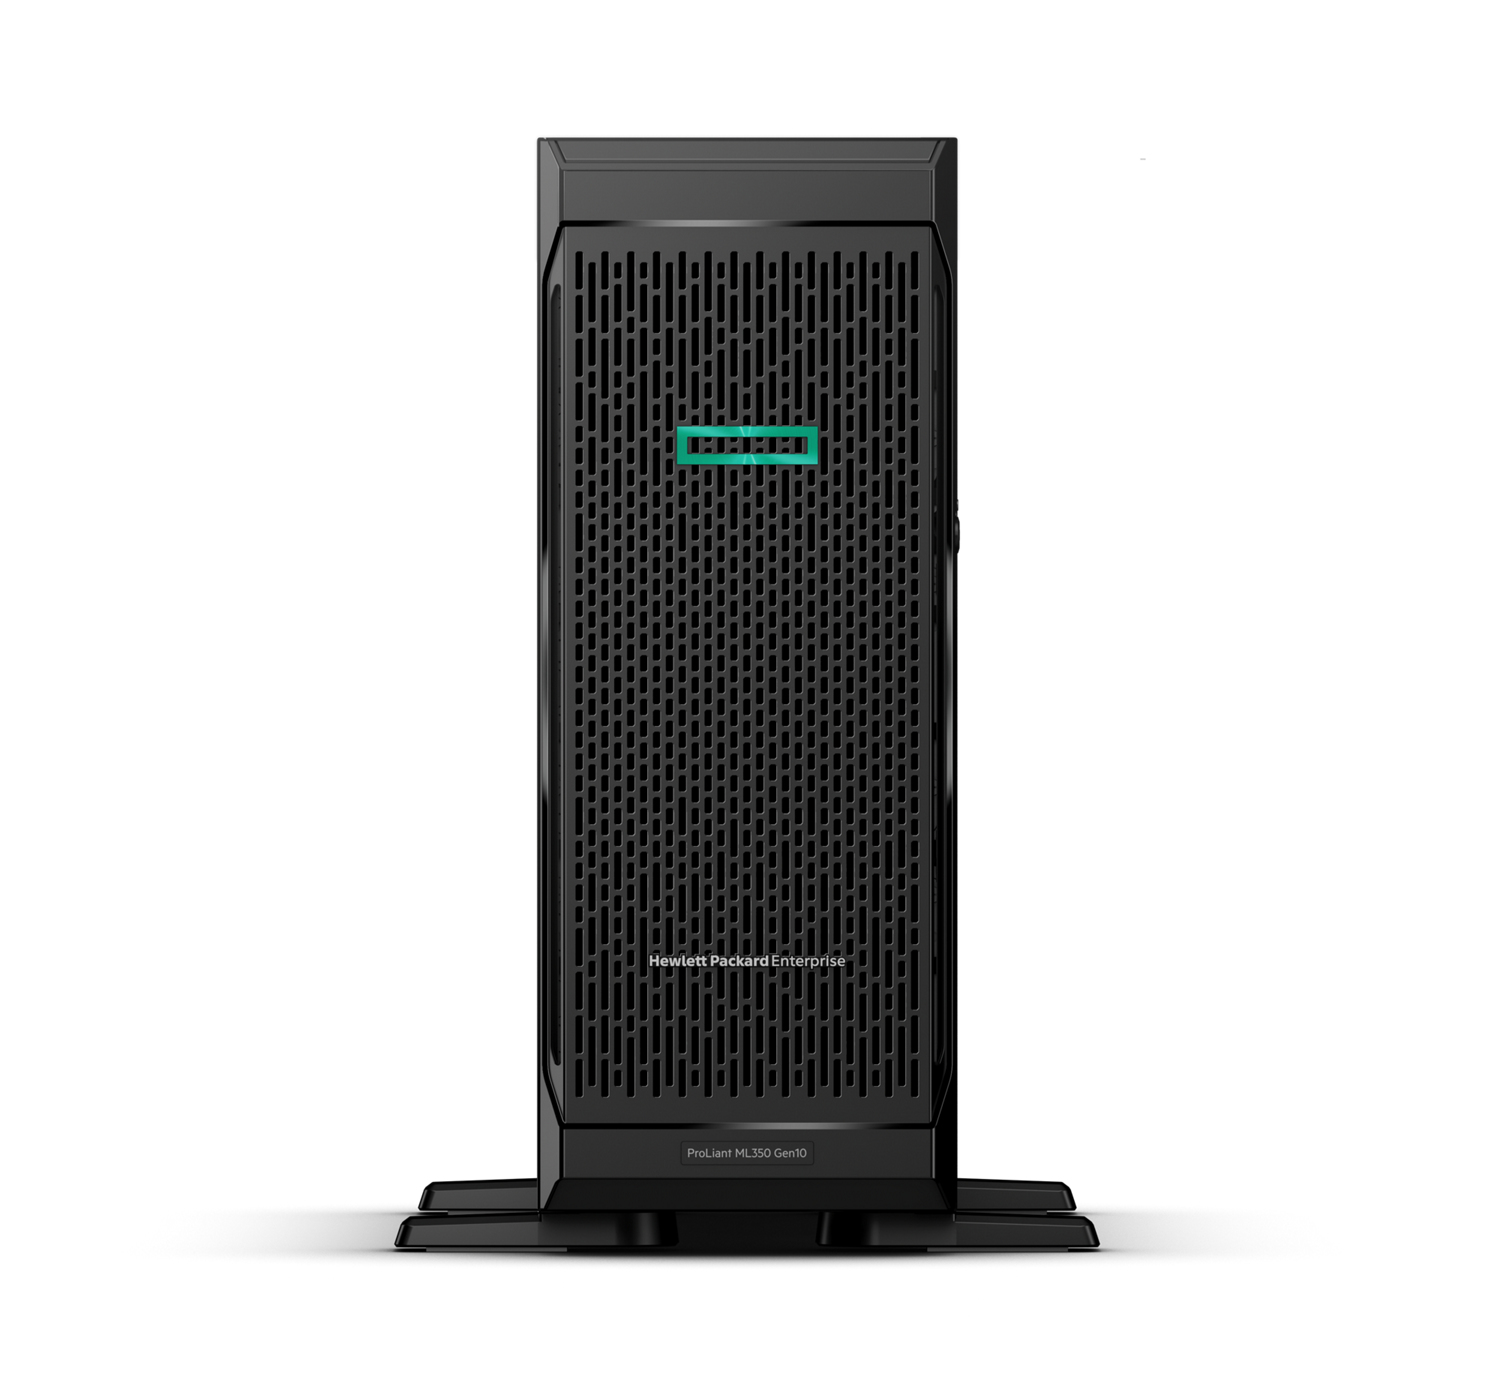 Hewlett Packard Enterprise ProLiant ML350 Gen10 servidor Intel® Xeon® Silver 2,4 GHz 16 GB DDR4-SDRAM 48 TB Torre (4U) 800 W